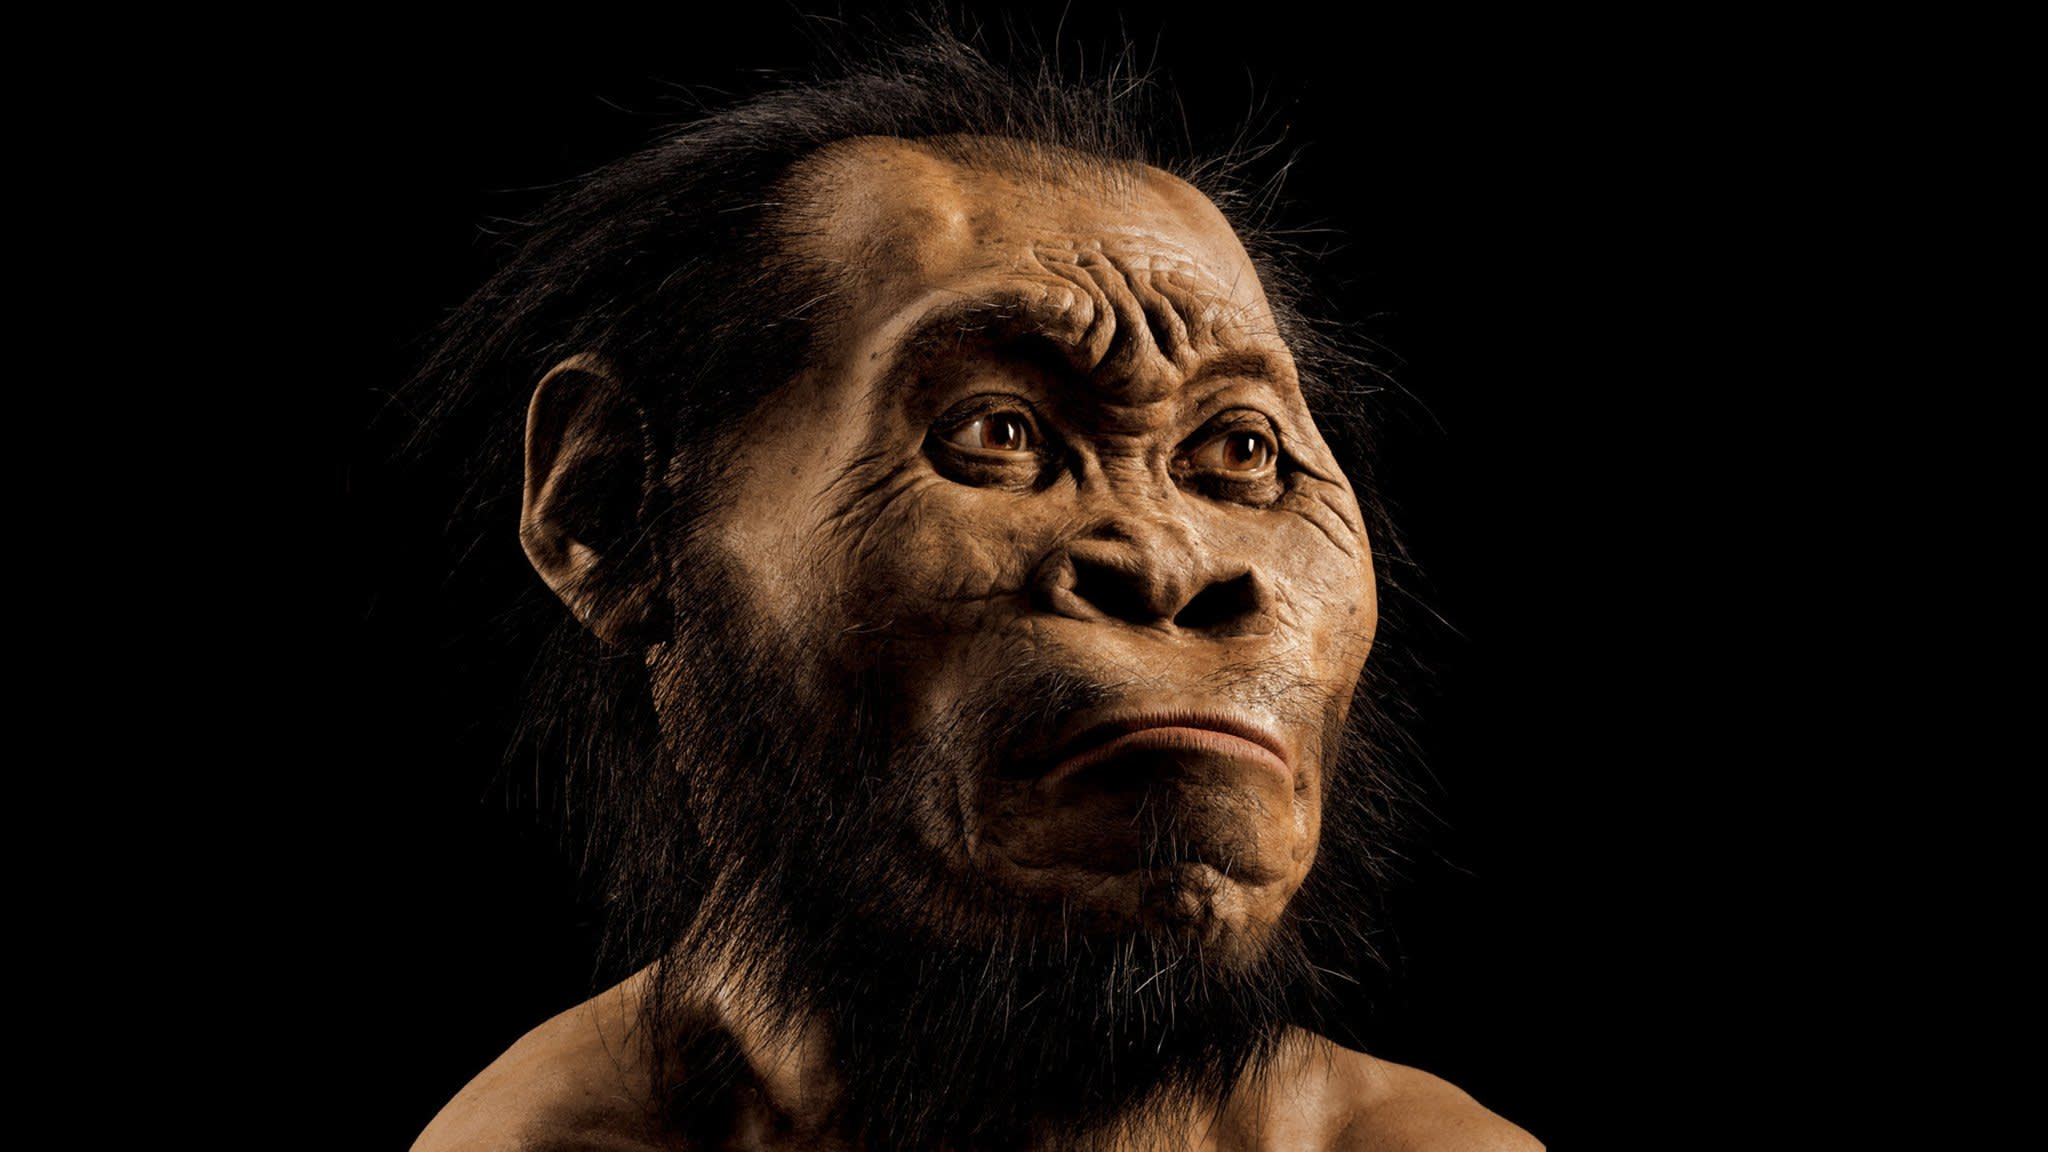 Homo naledi, a new species of human, is discovered in South Africa | Financial Times